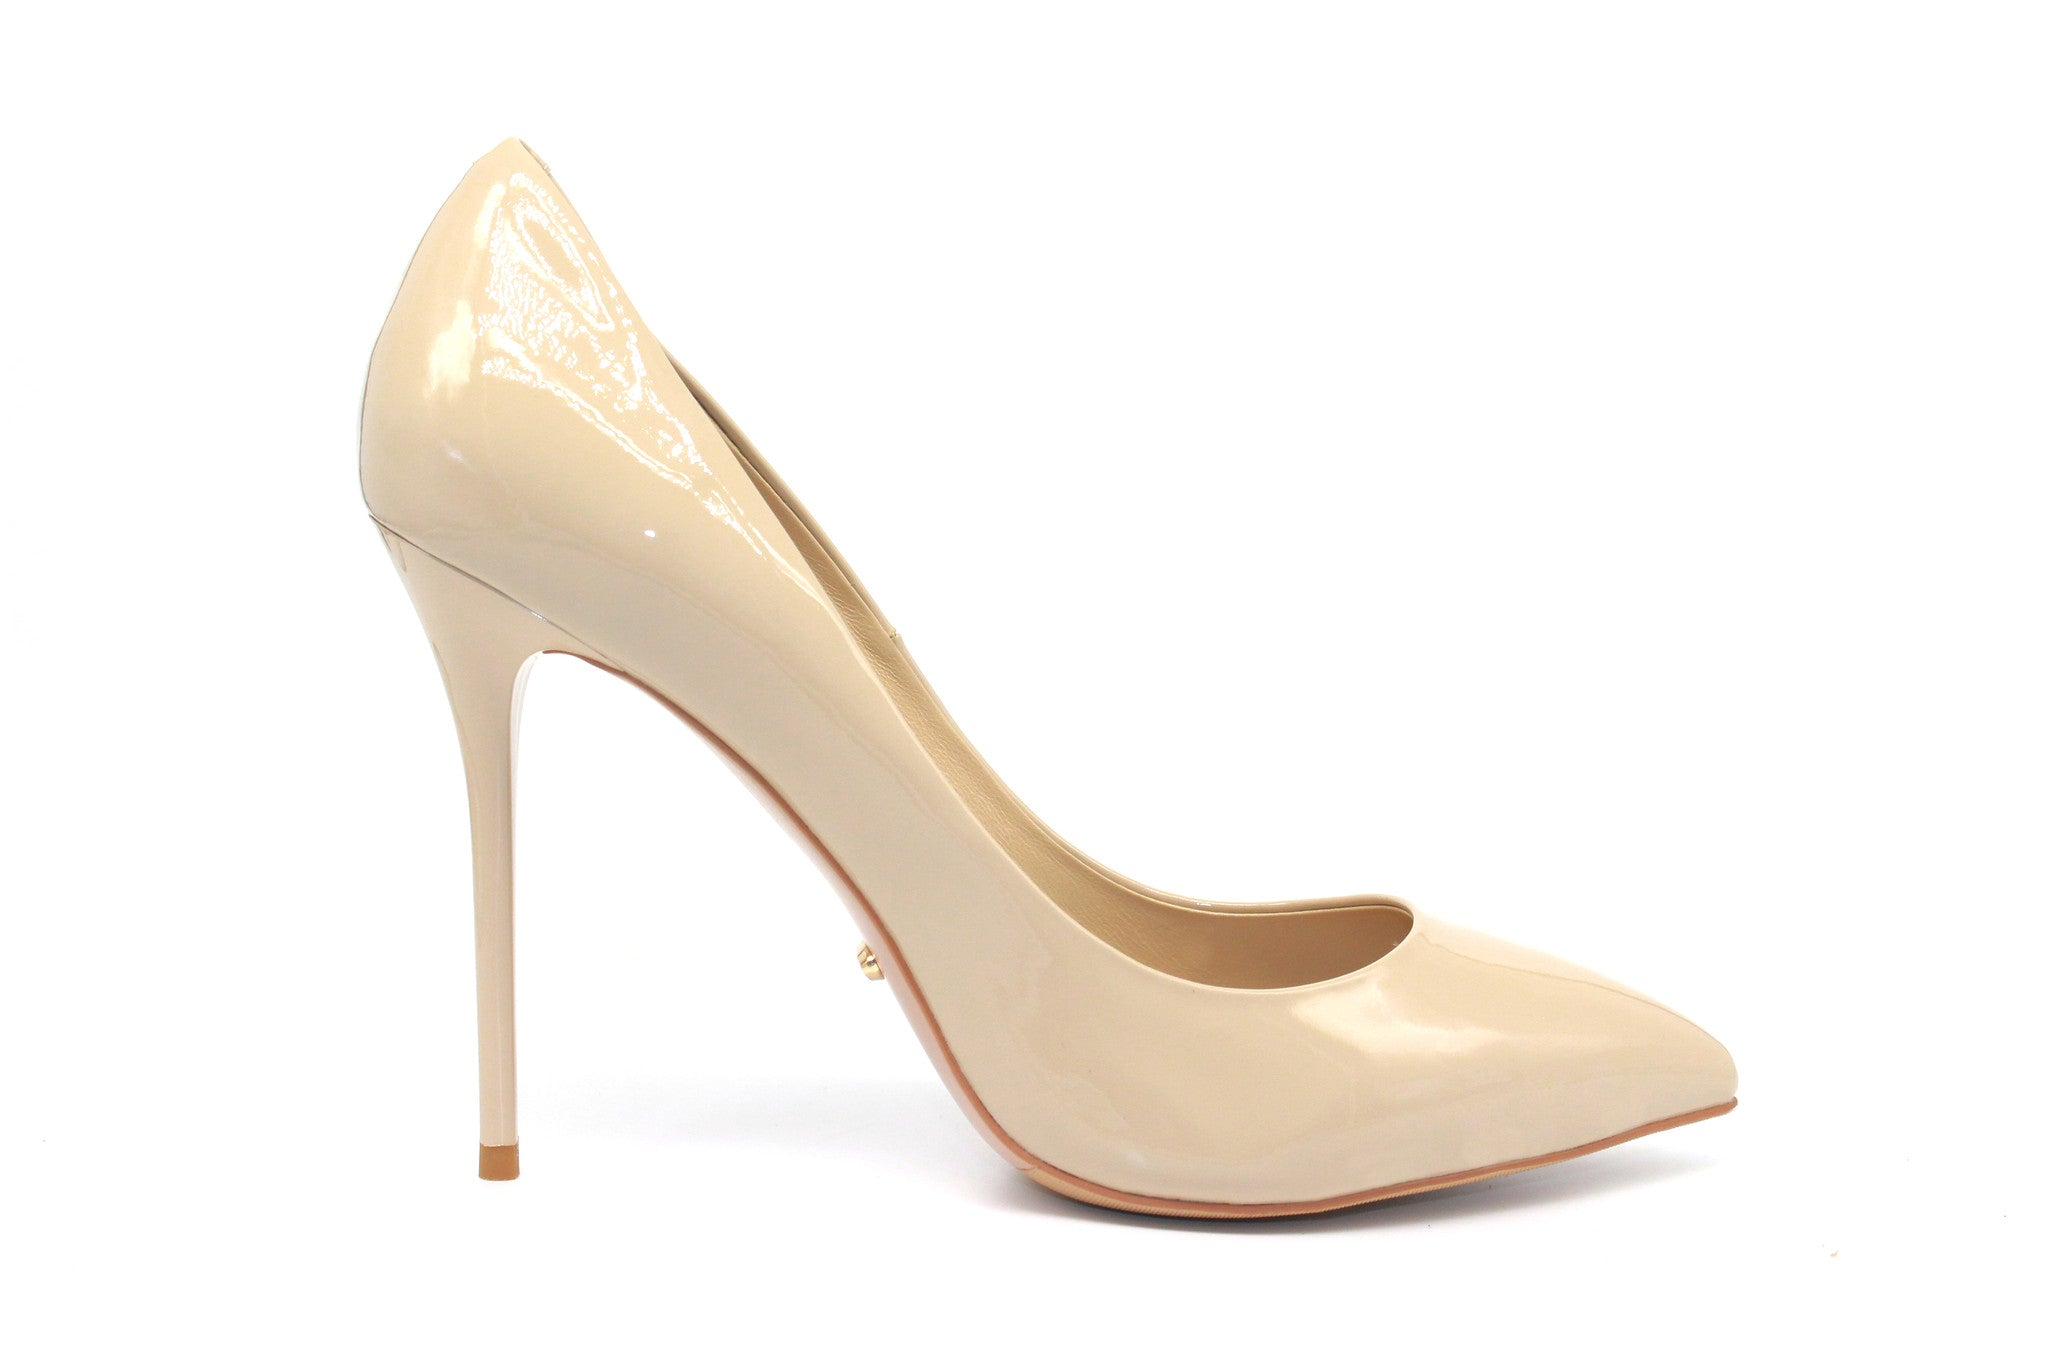 Nude Stilleto Heels